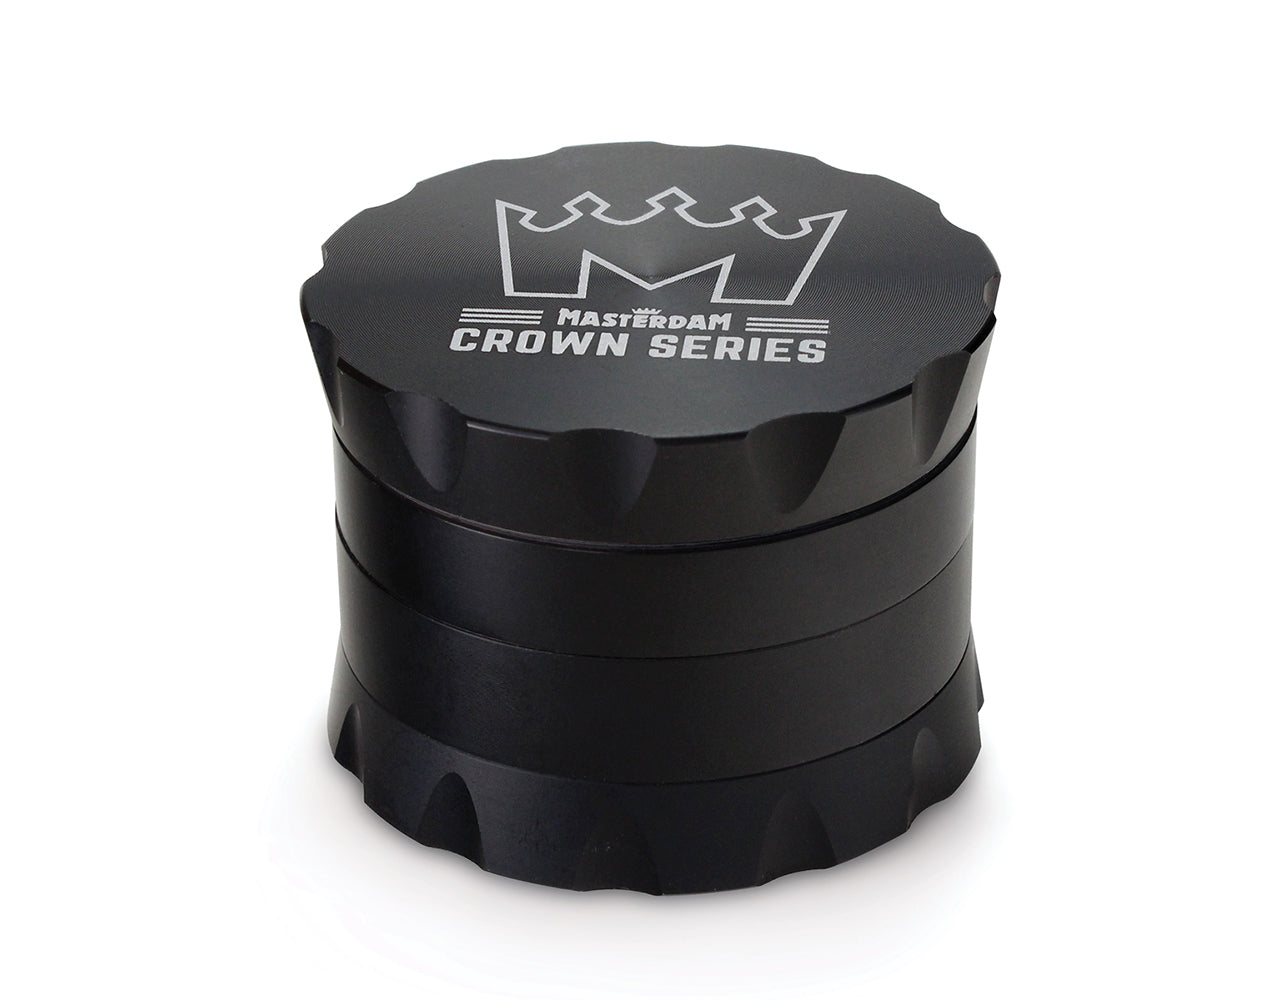 Masterdam Crown Series 2.2 Inch Herb Grinder with Micron Screen - 4-Piece Matte Black